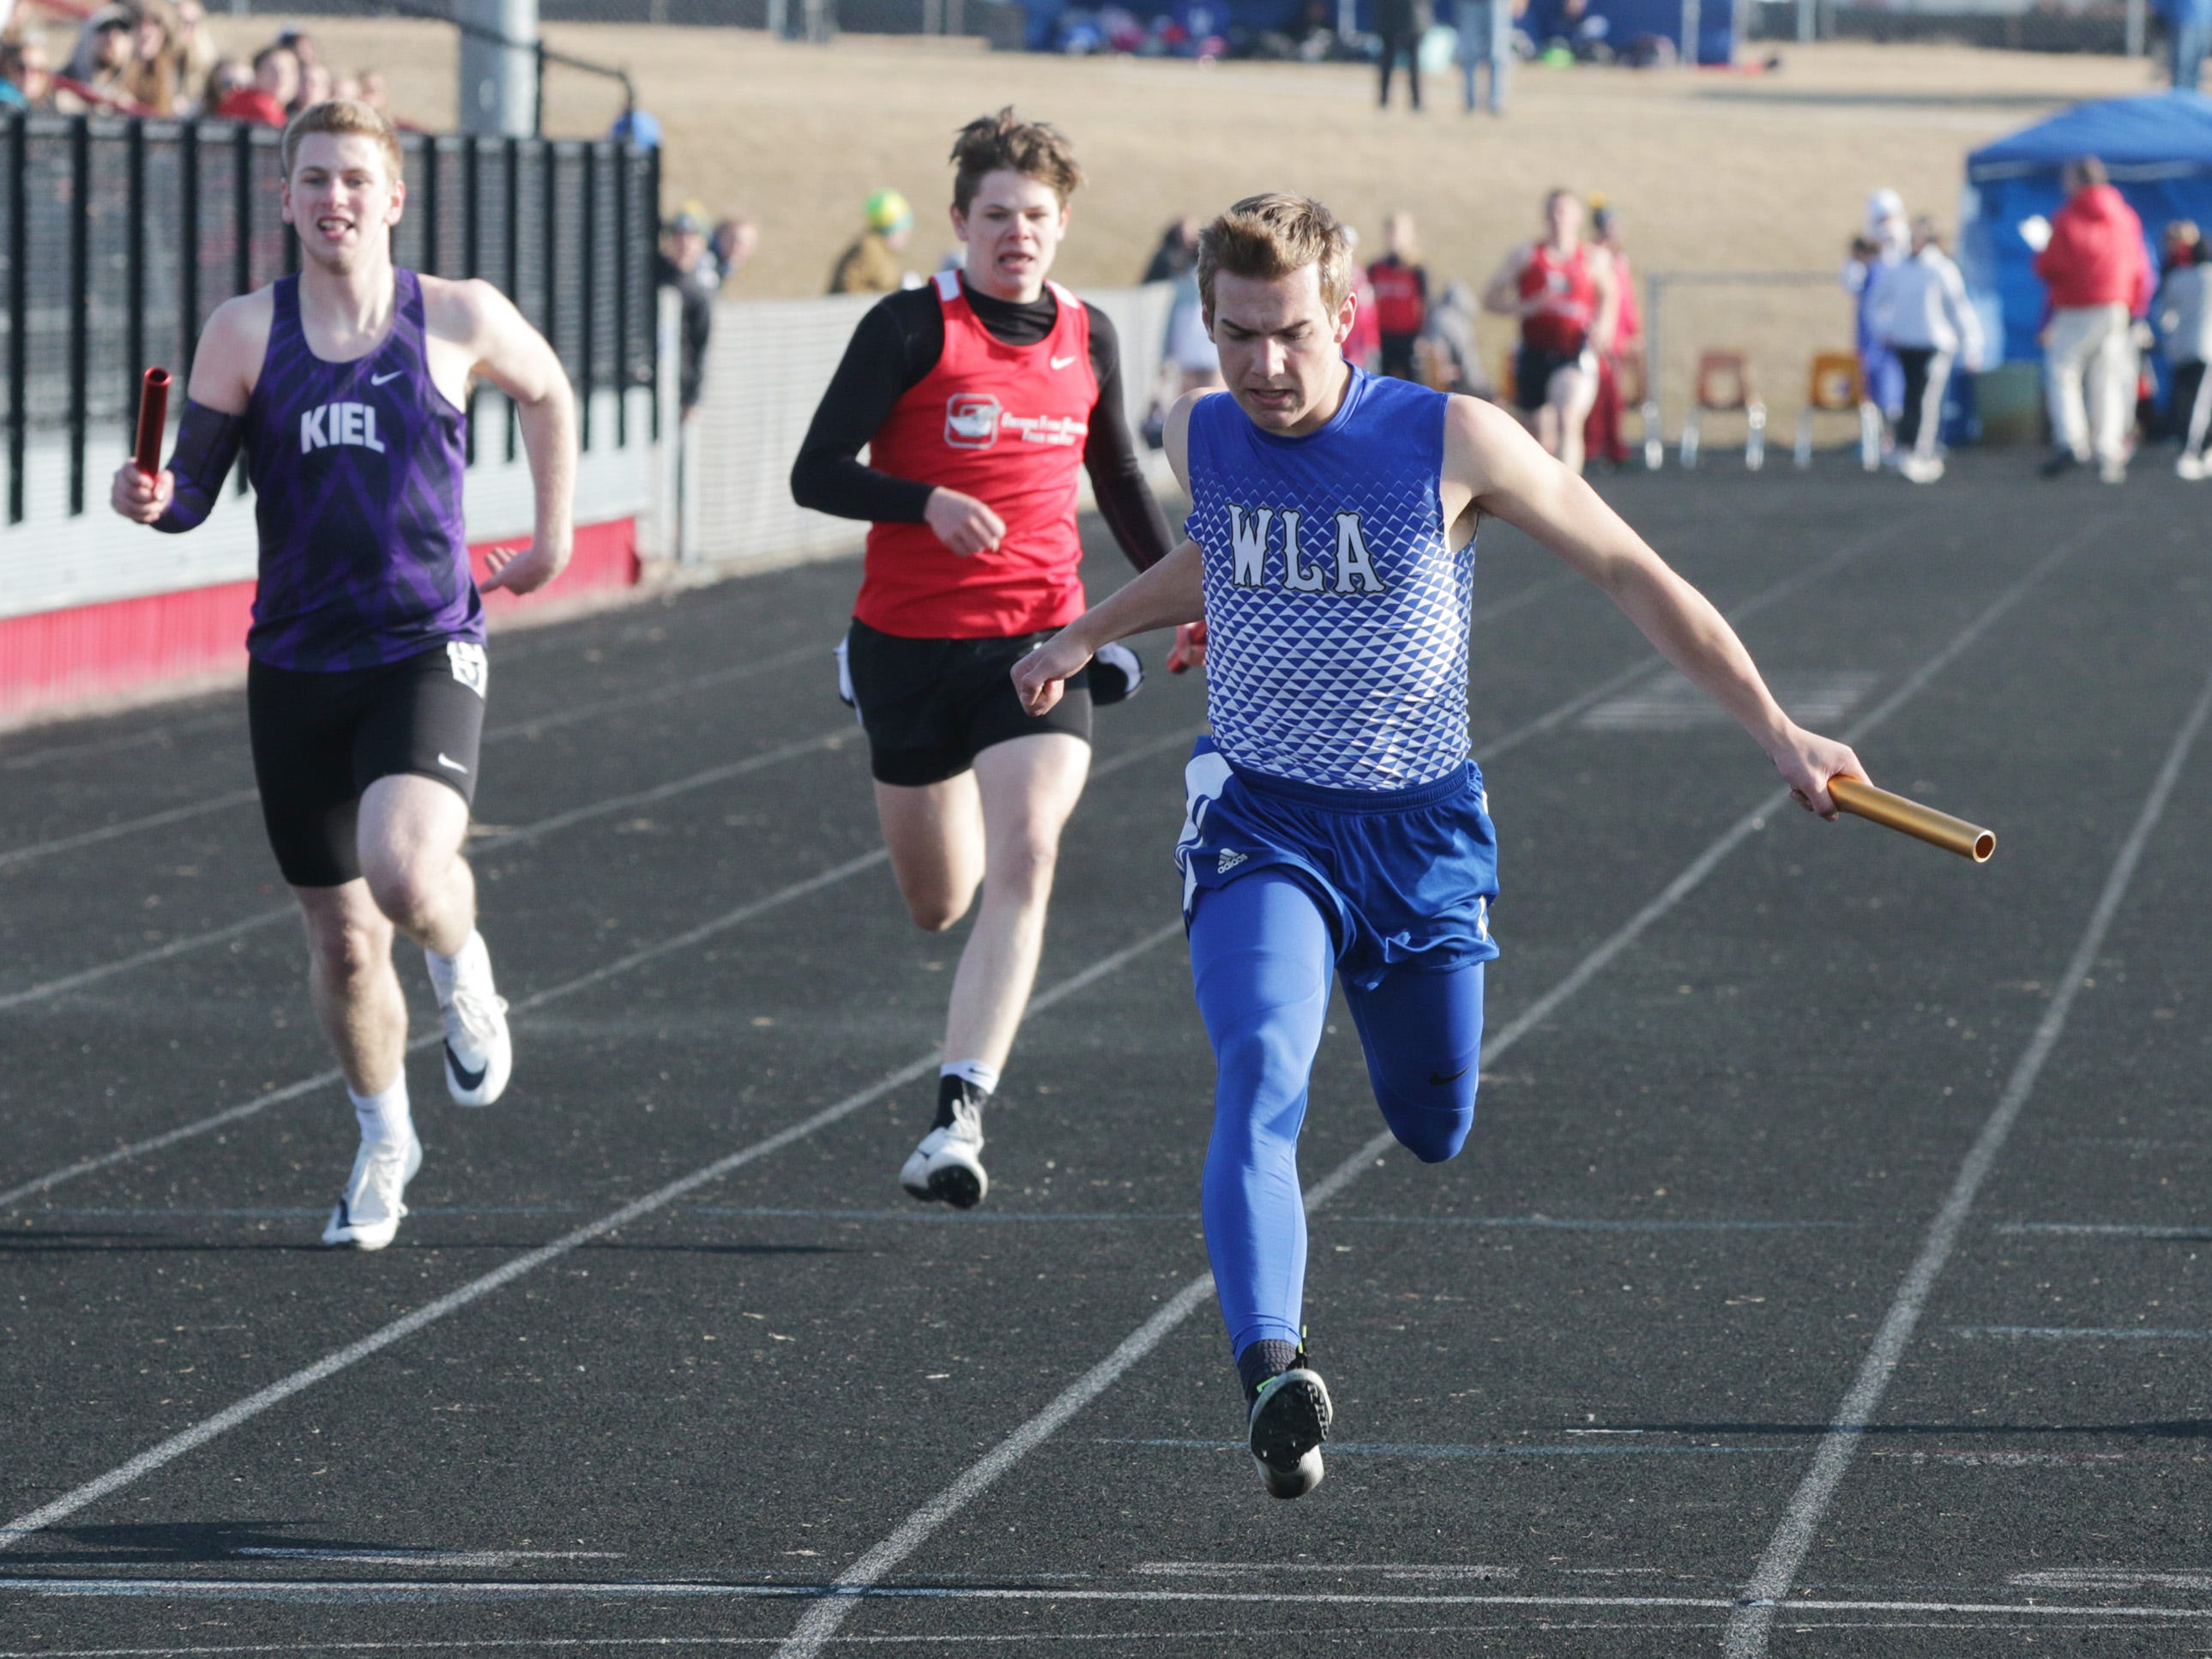 Winnebago Lutheran's Donovan Schwartz stretches at the finish line in the 4 x 200 meter relay at the Flying Dutchmen Invite, Friday, April 5, 2019, in Oostburg, Wis.